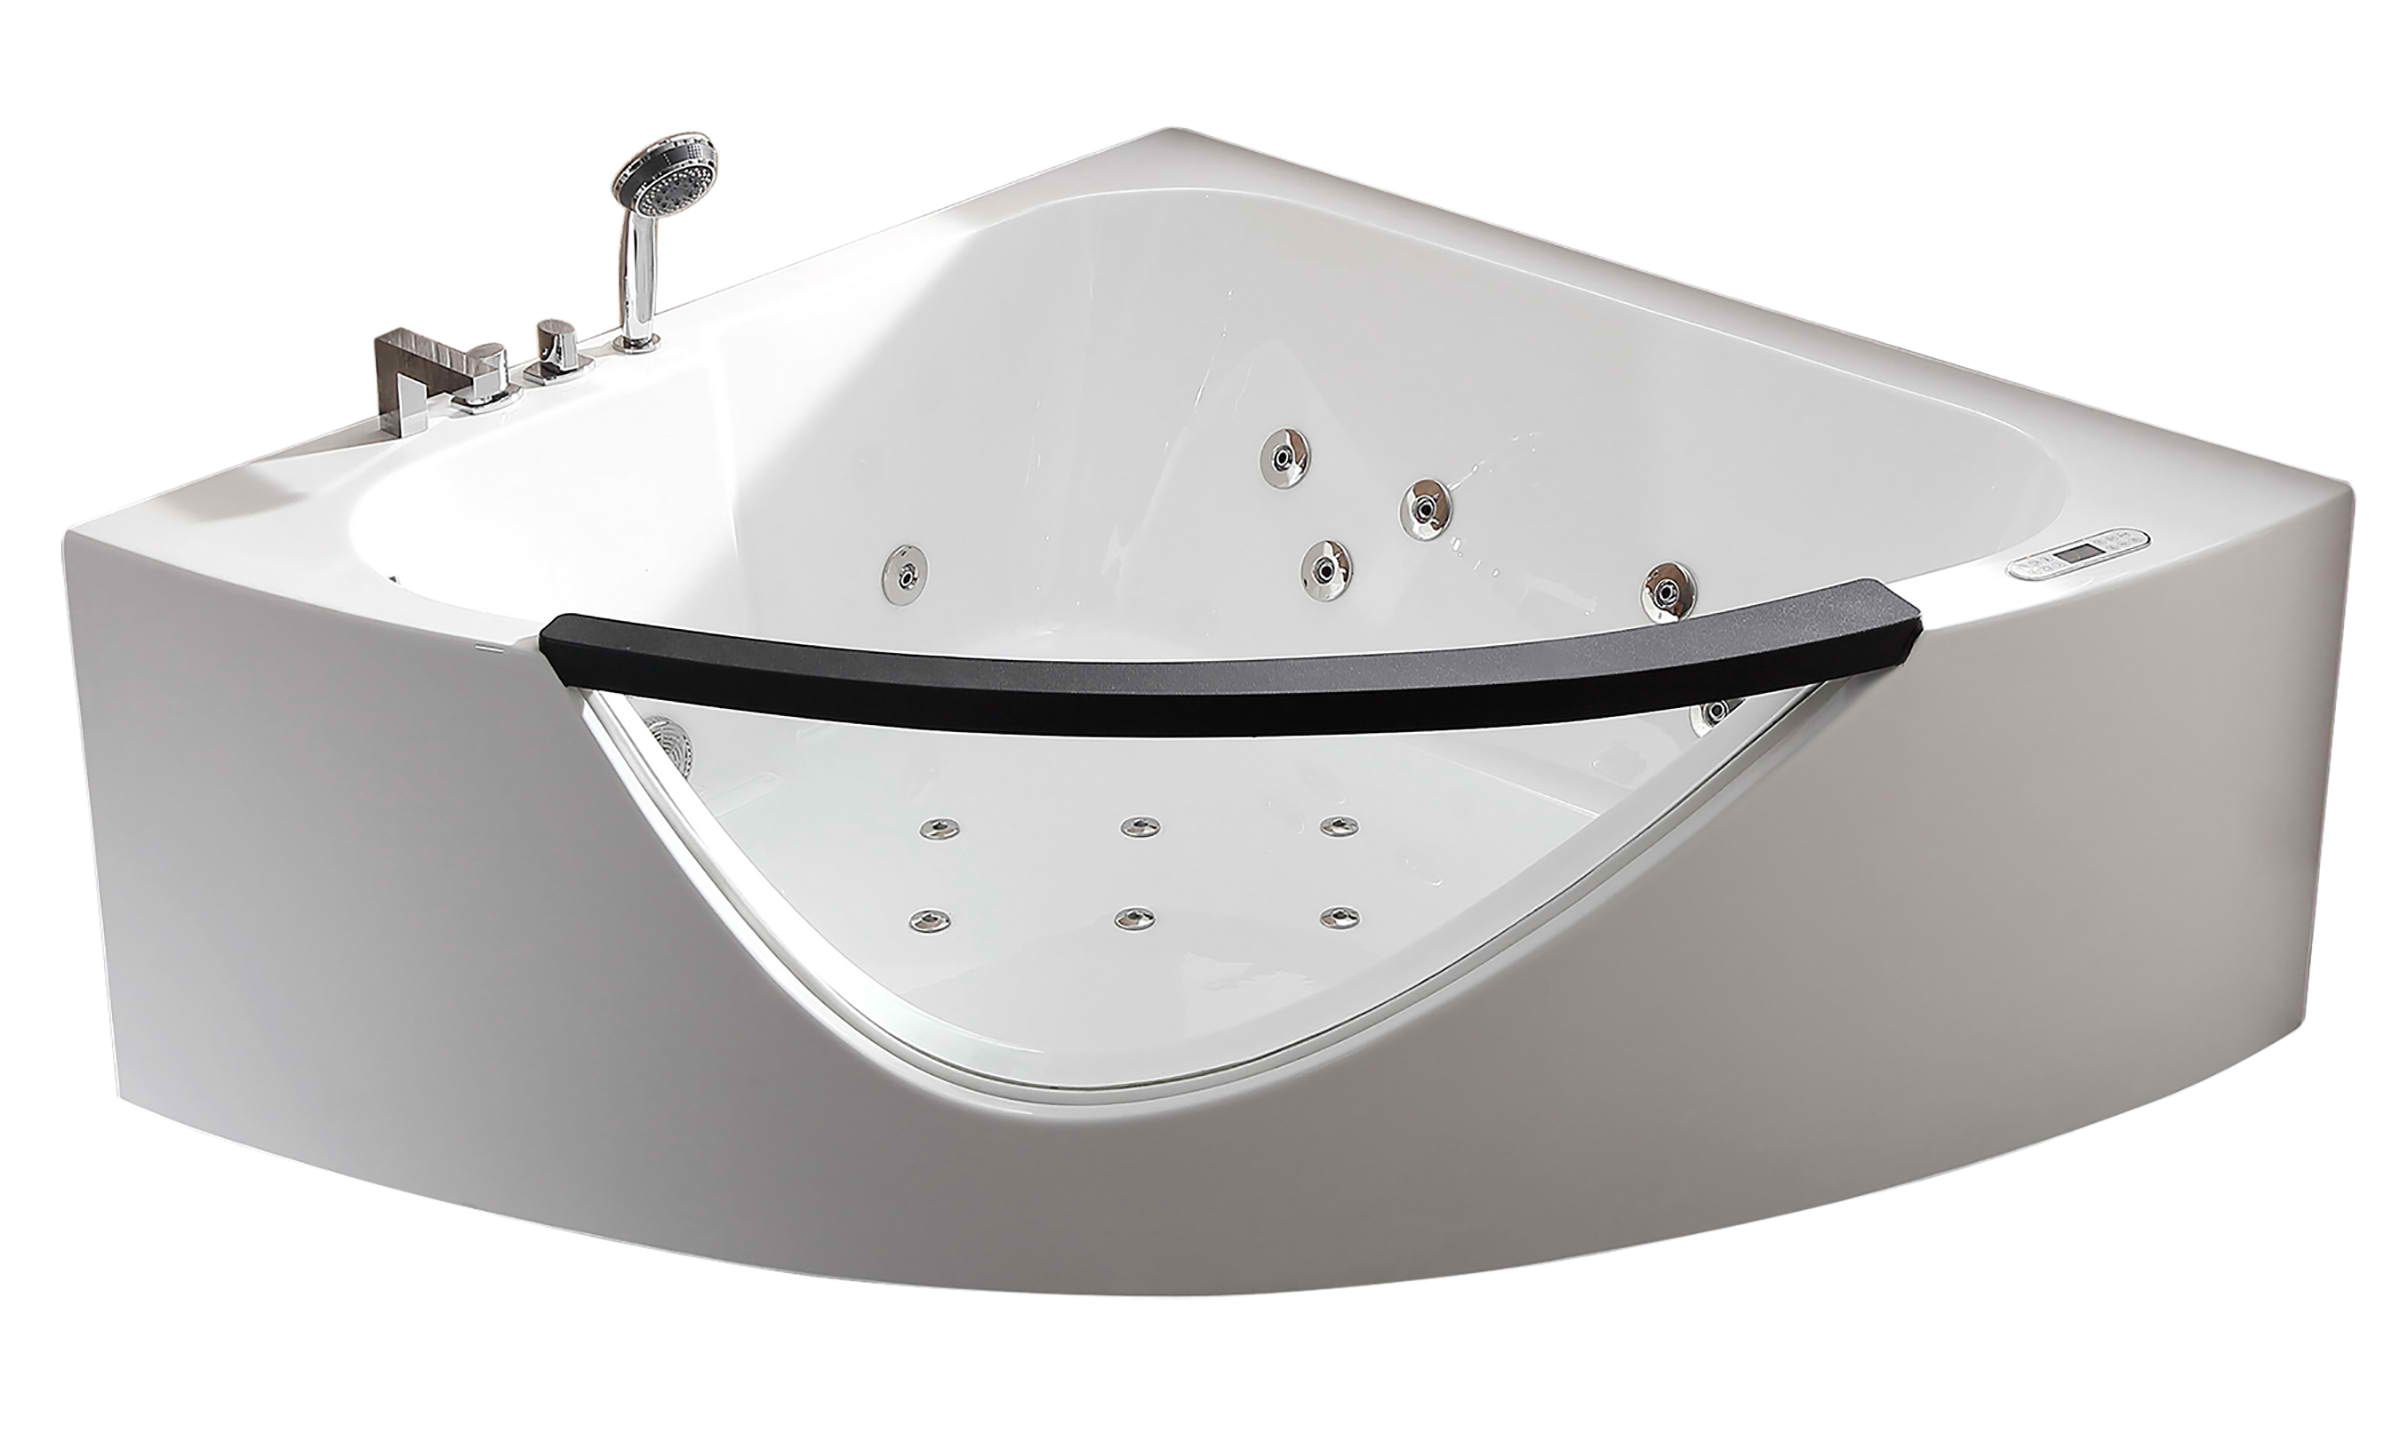 EAGO AM199ETL 5ft Clear Rounded Corner Acrylic Whirlpool Bathtub for Two